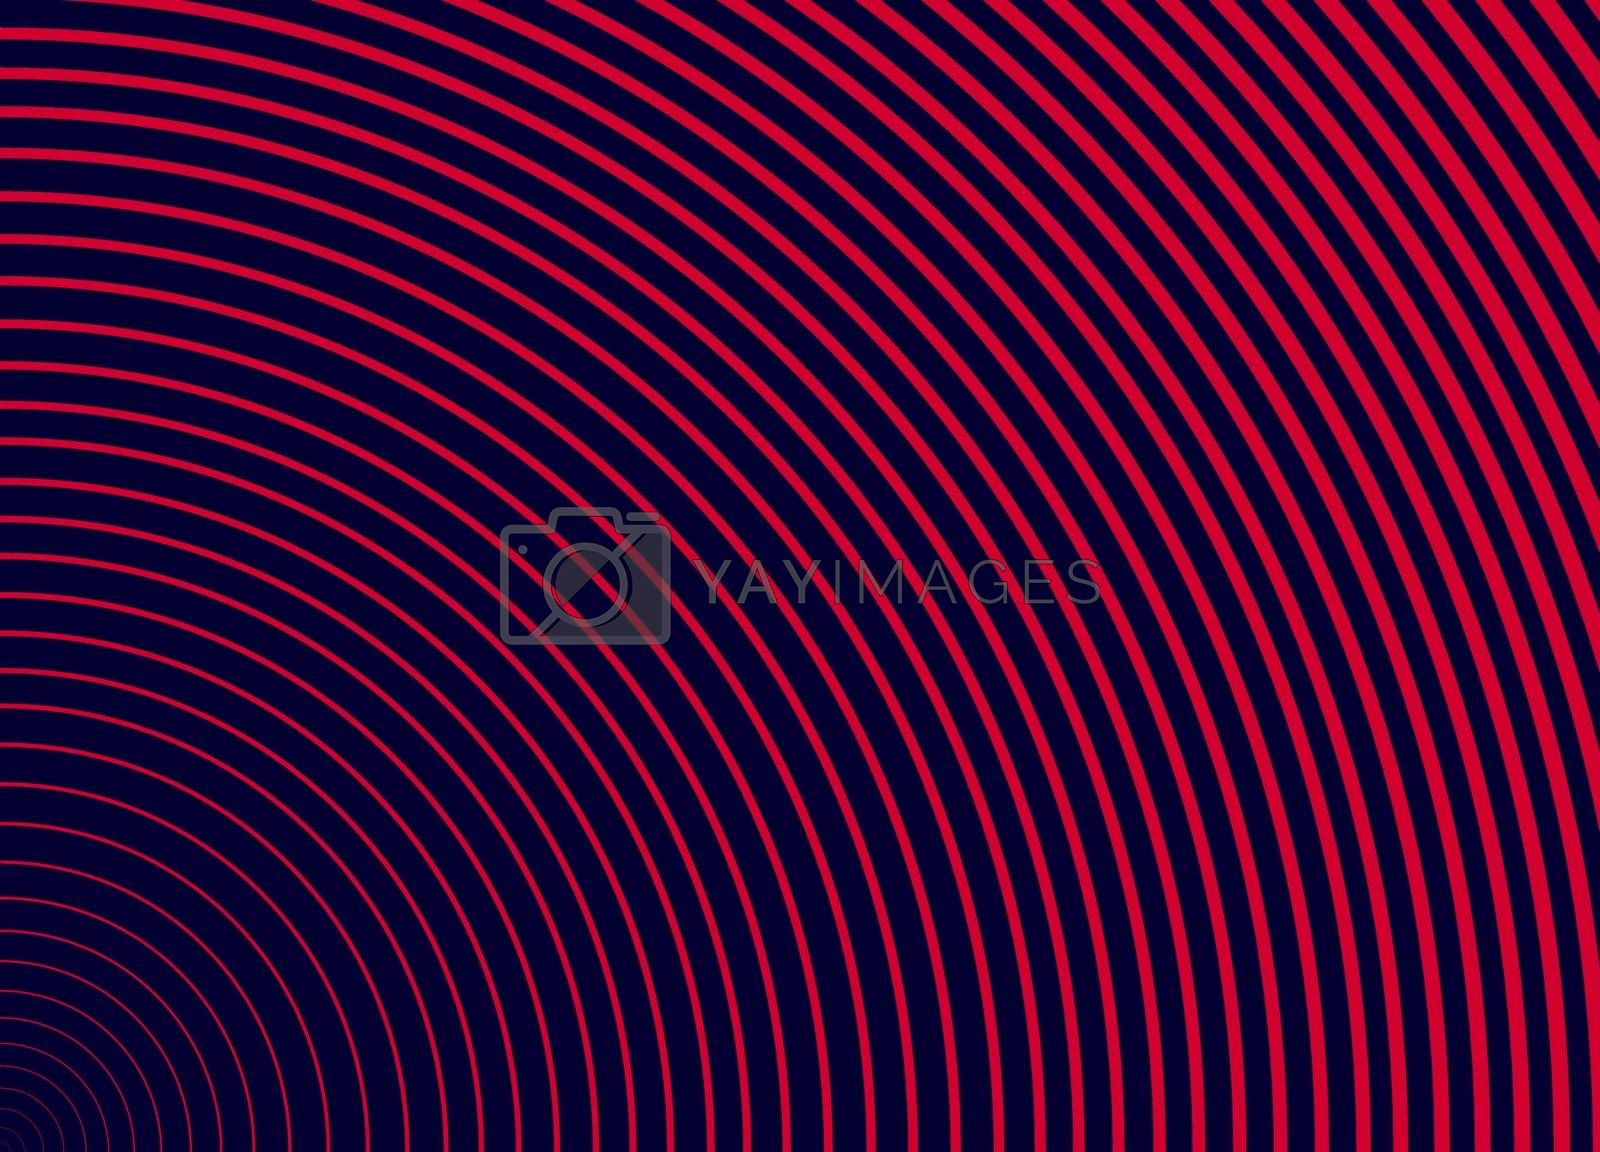 Abstract curve line with dark blue background.